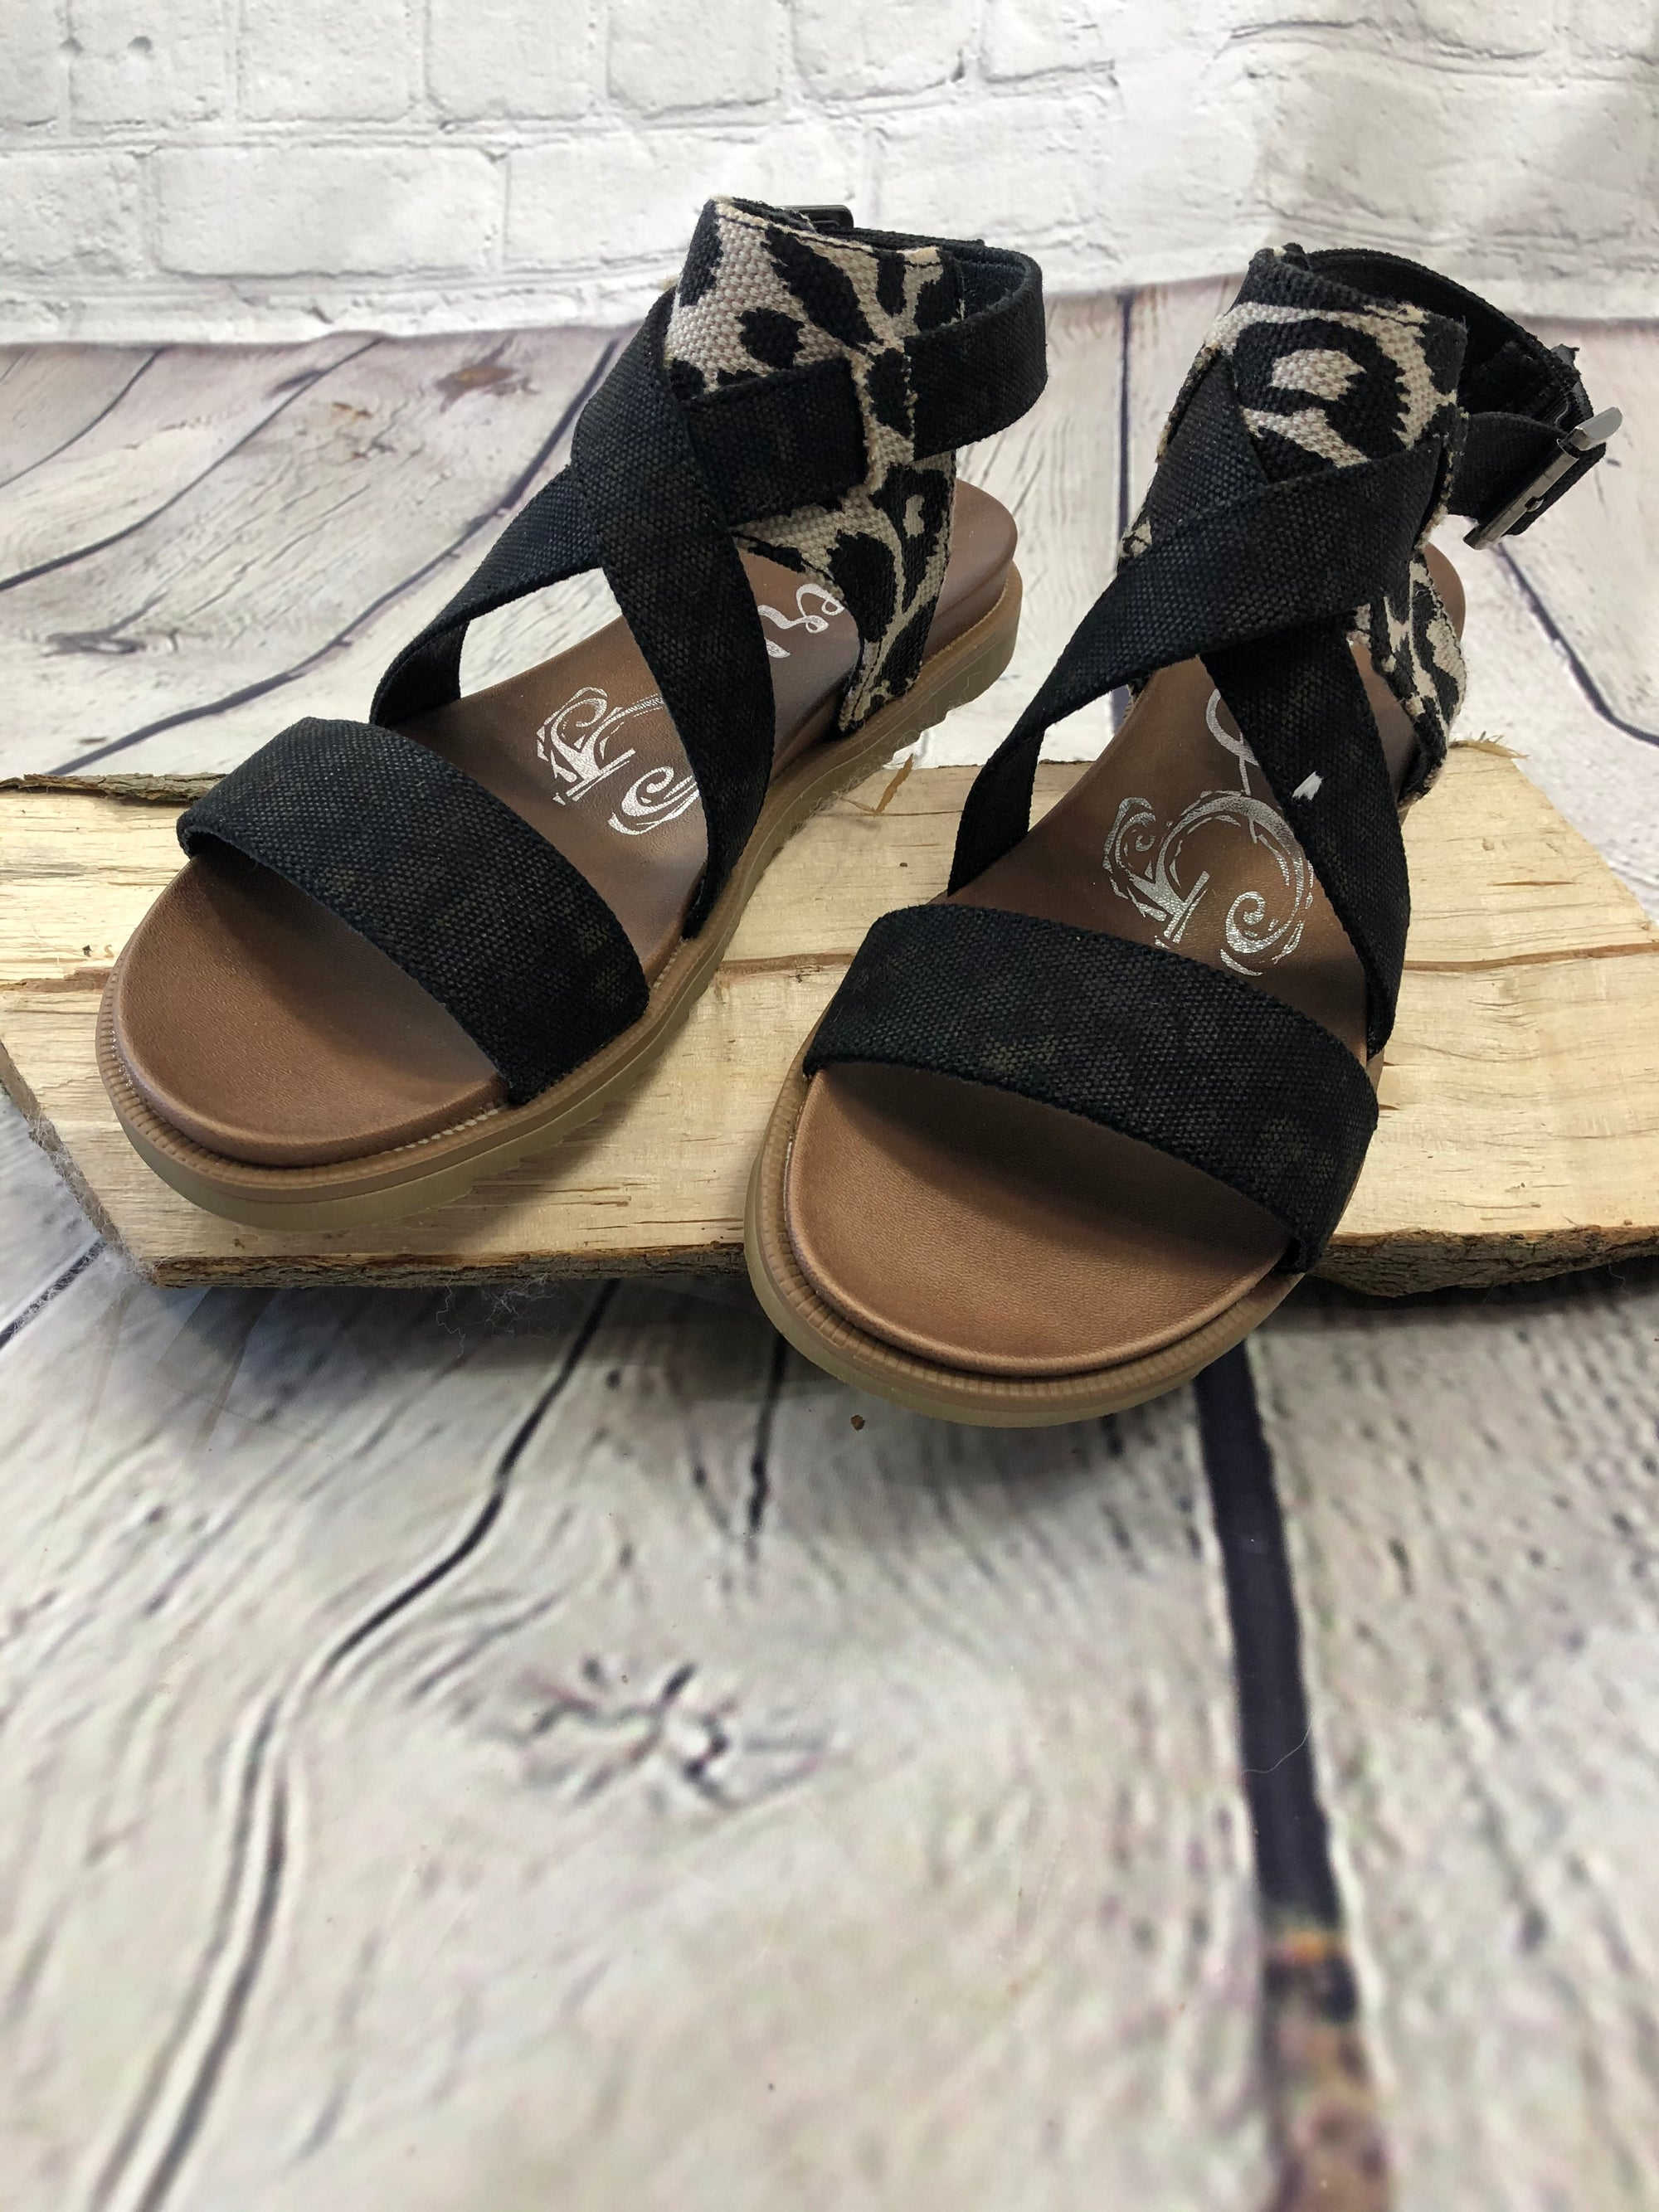 Jayla Black & Cream Sandals